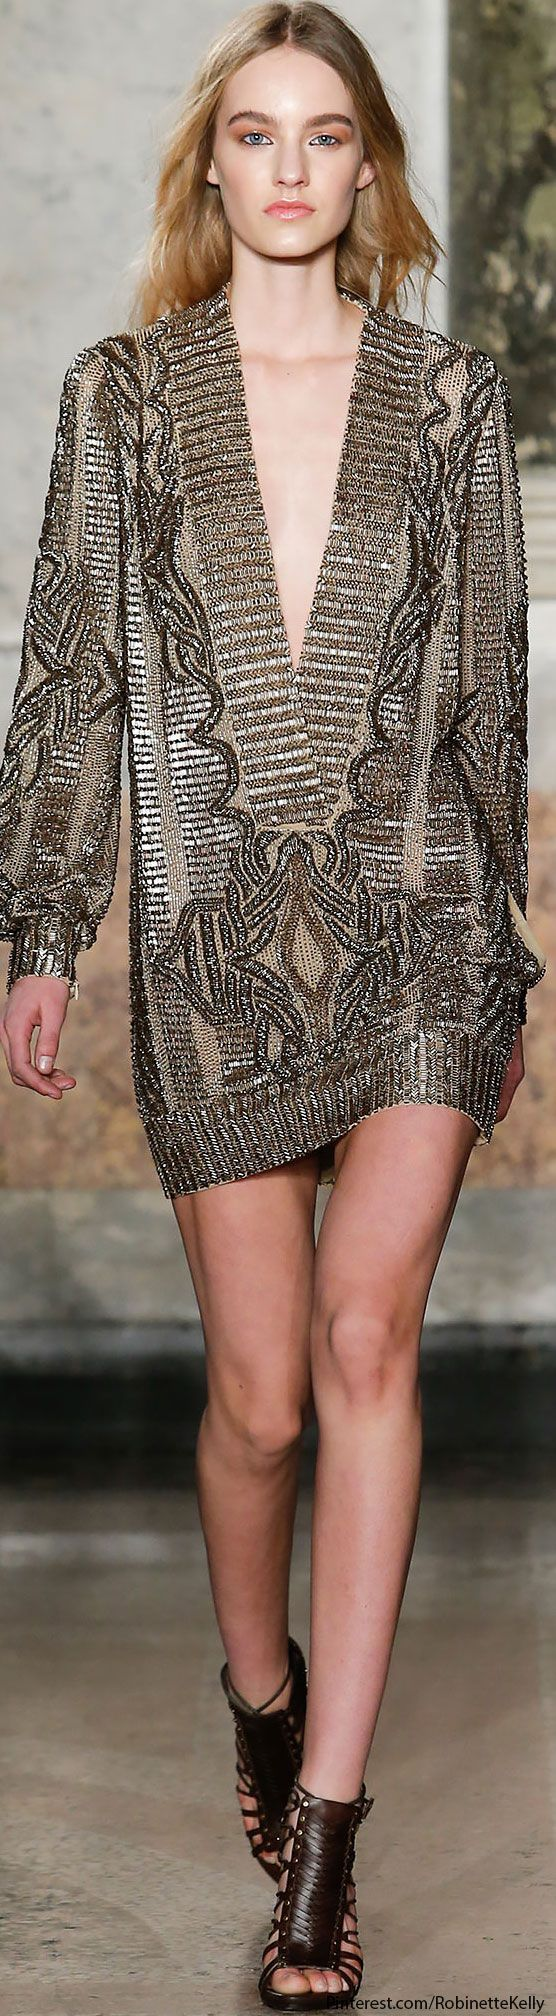 Emilio Pucci   F/W 2014 RTW, one of my favorite looks for the fall season.